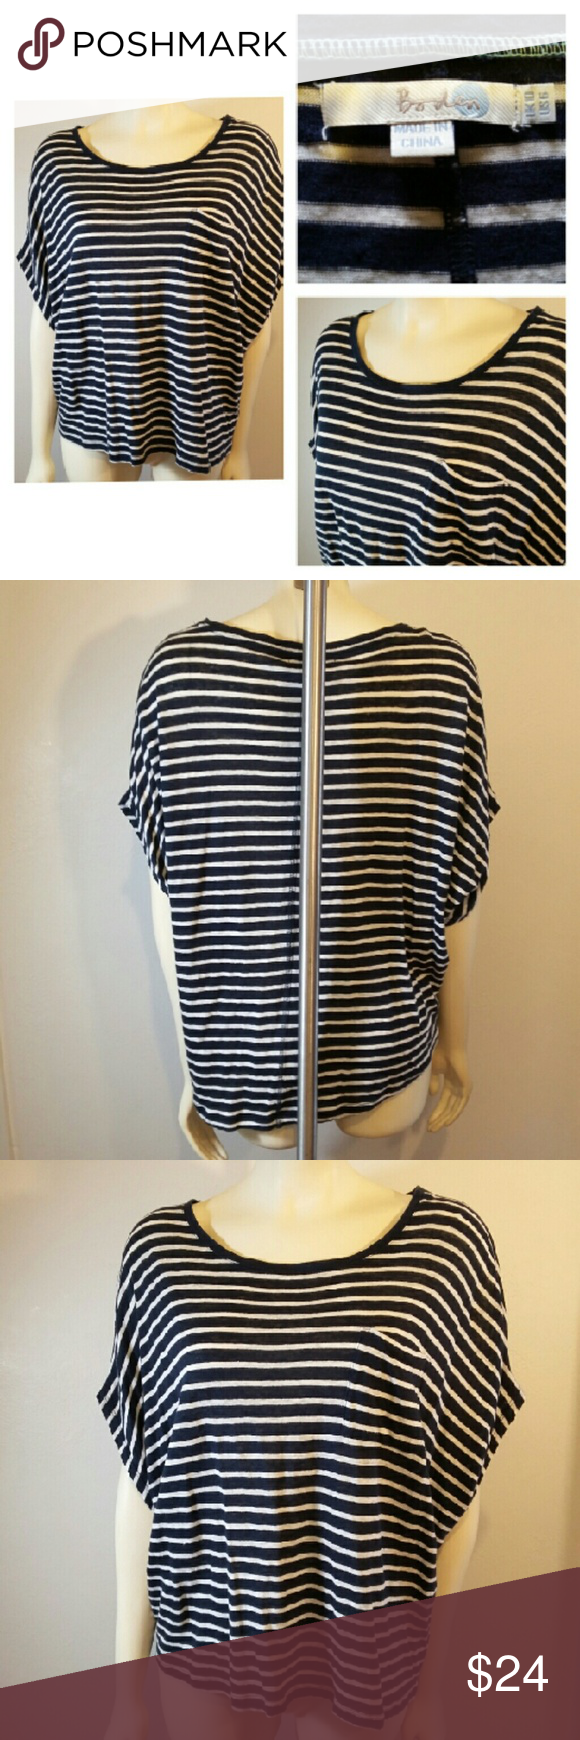 Nautical Themed HI Lo Striped Top Boden Women's Hi Lo Size 6 US 10 UK Blue & White Striped Top Shirt Nautical Theme 100% Linen Machine wash delicate Dry flat  22 inch long front 24 inch long back 12 inches across back 21 inches wide  Please email me with any questions Smoke Free Fast Shipping Thank You and Happy Poshing! Boden Tops